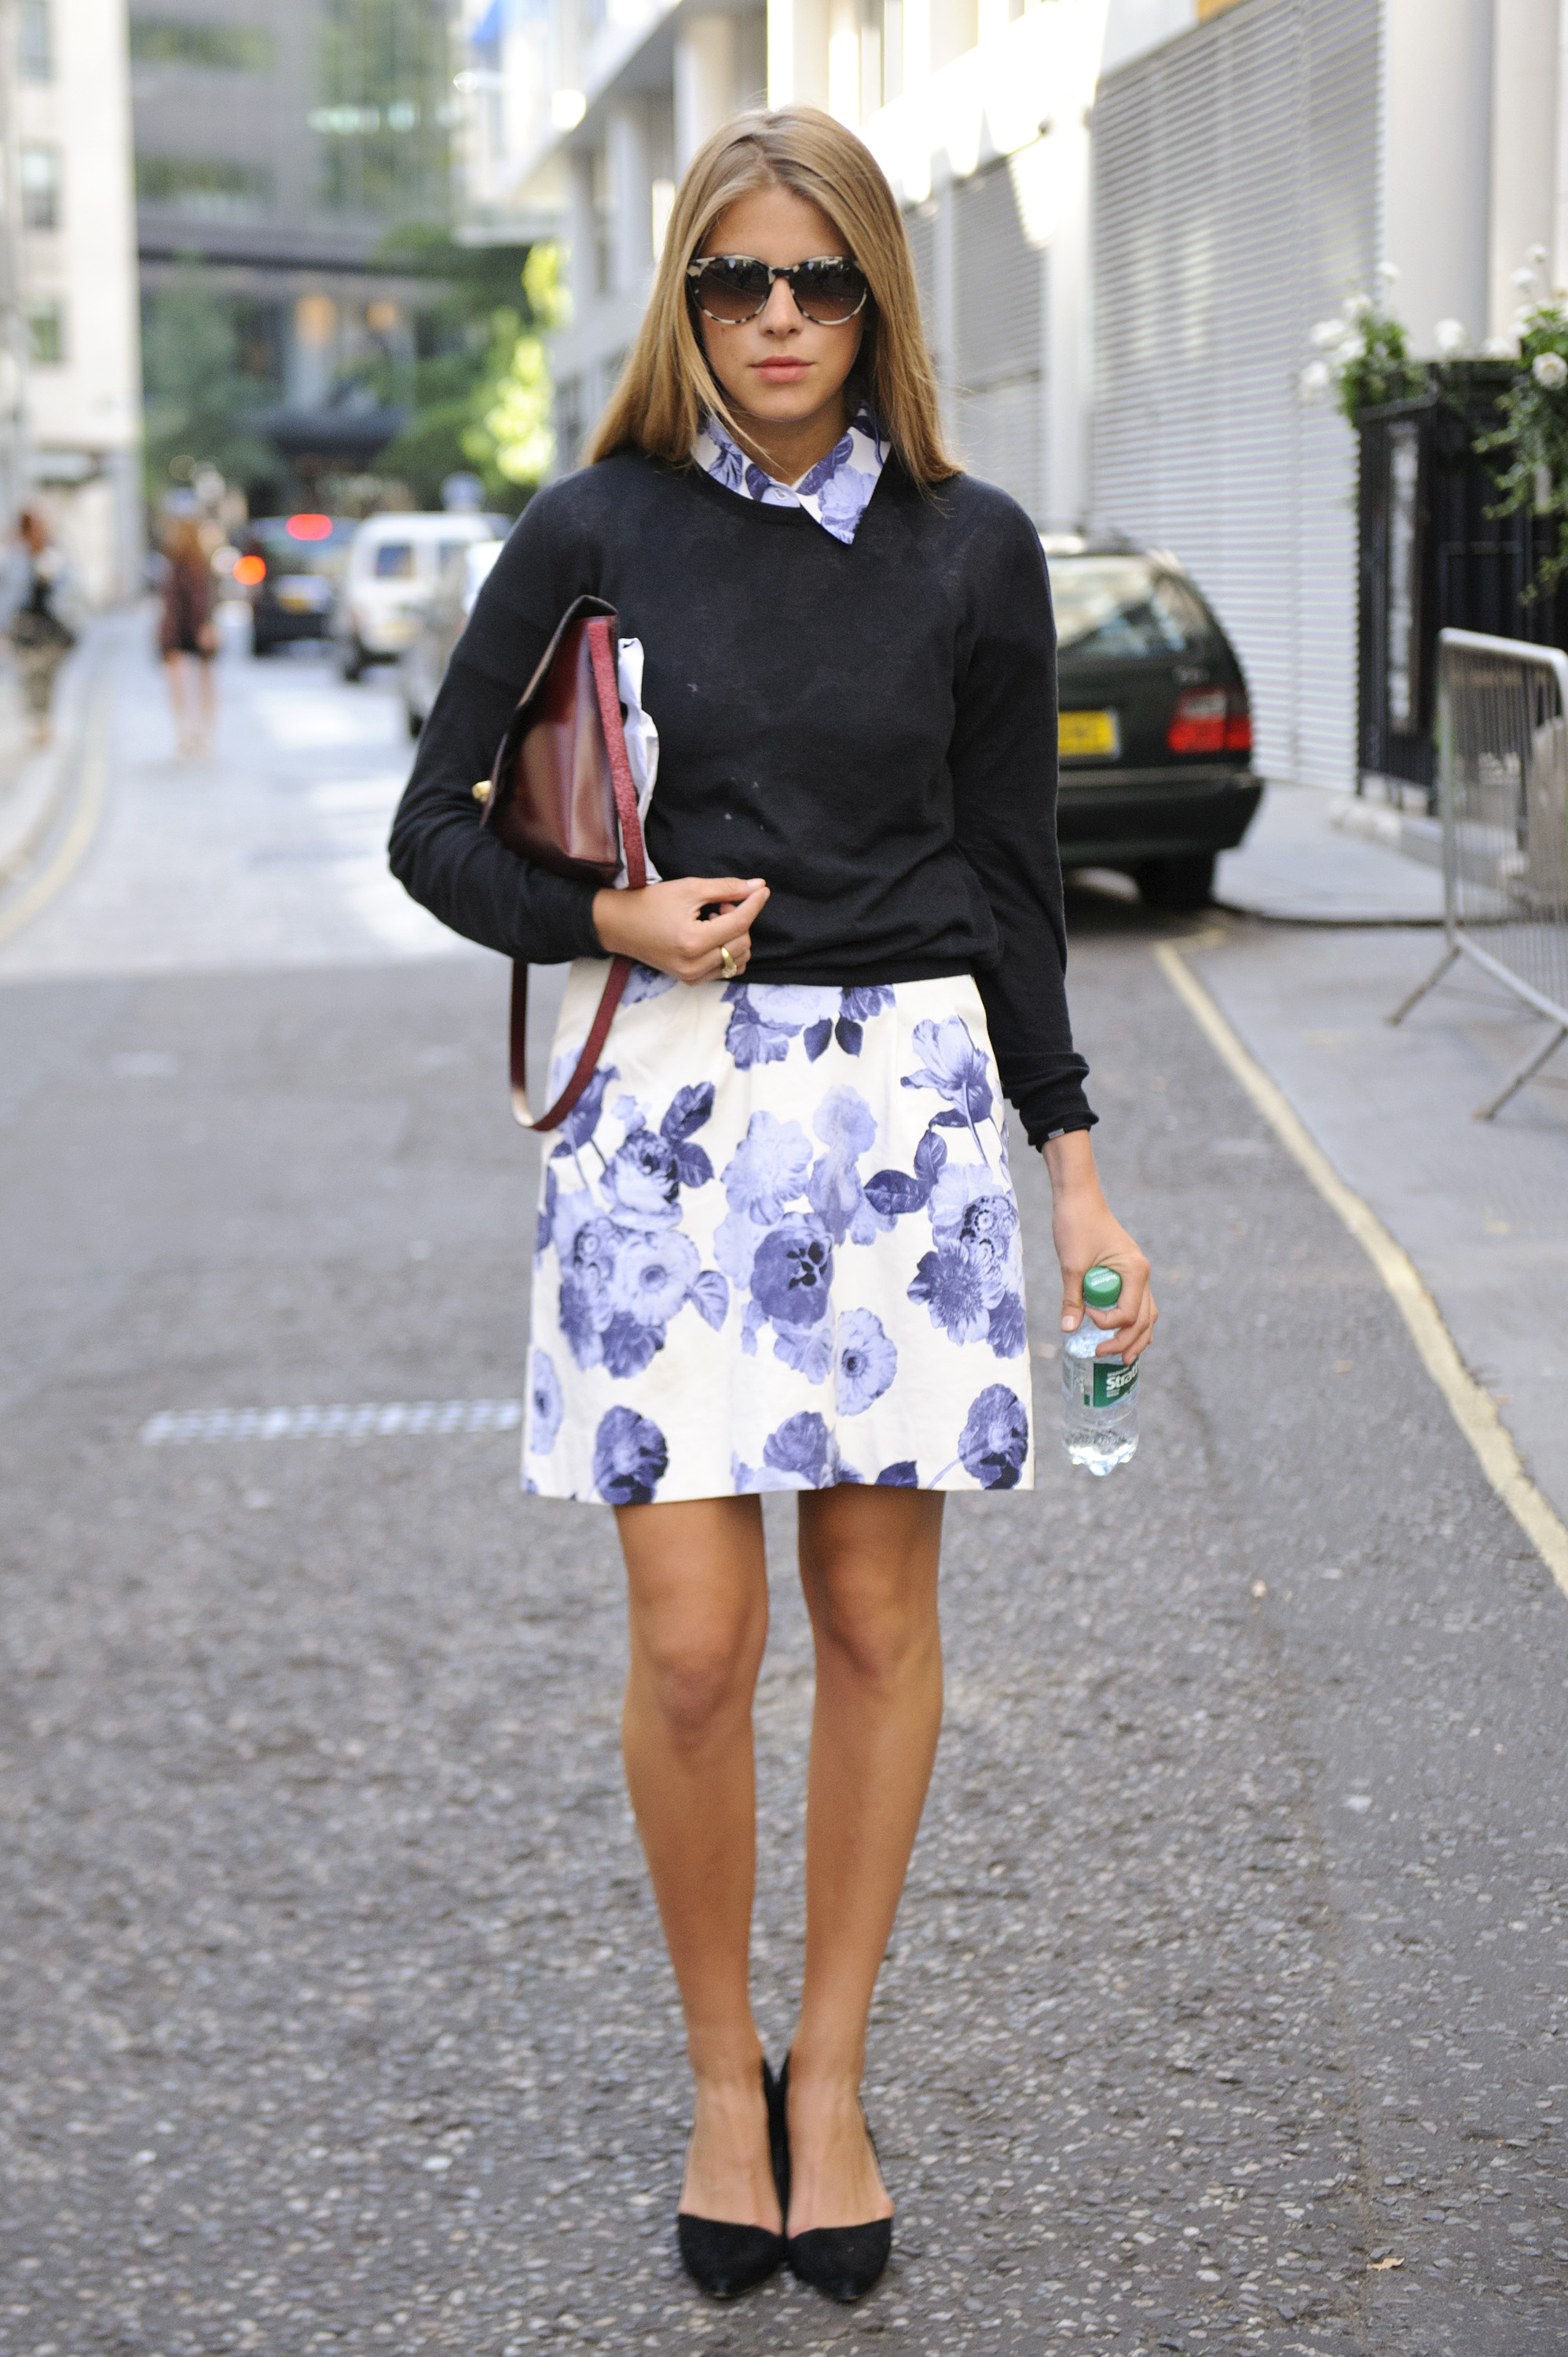 The collared blouse and sweater set never gets old, especially when you've got pretty floral prints to boast, too.